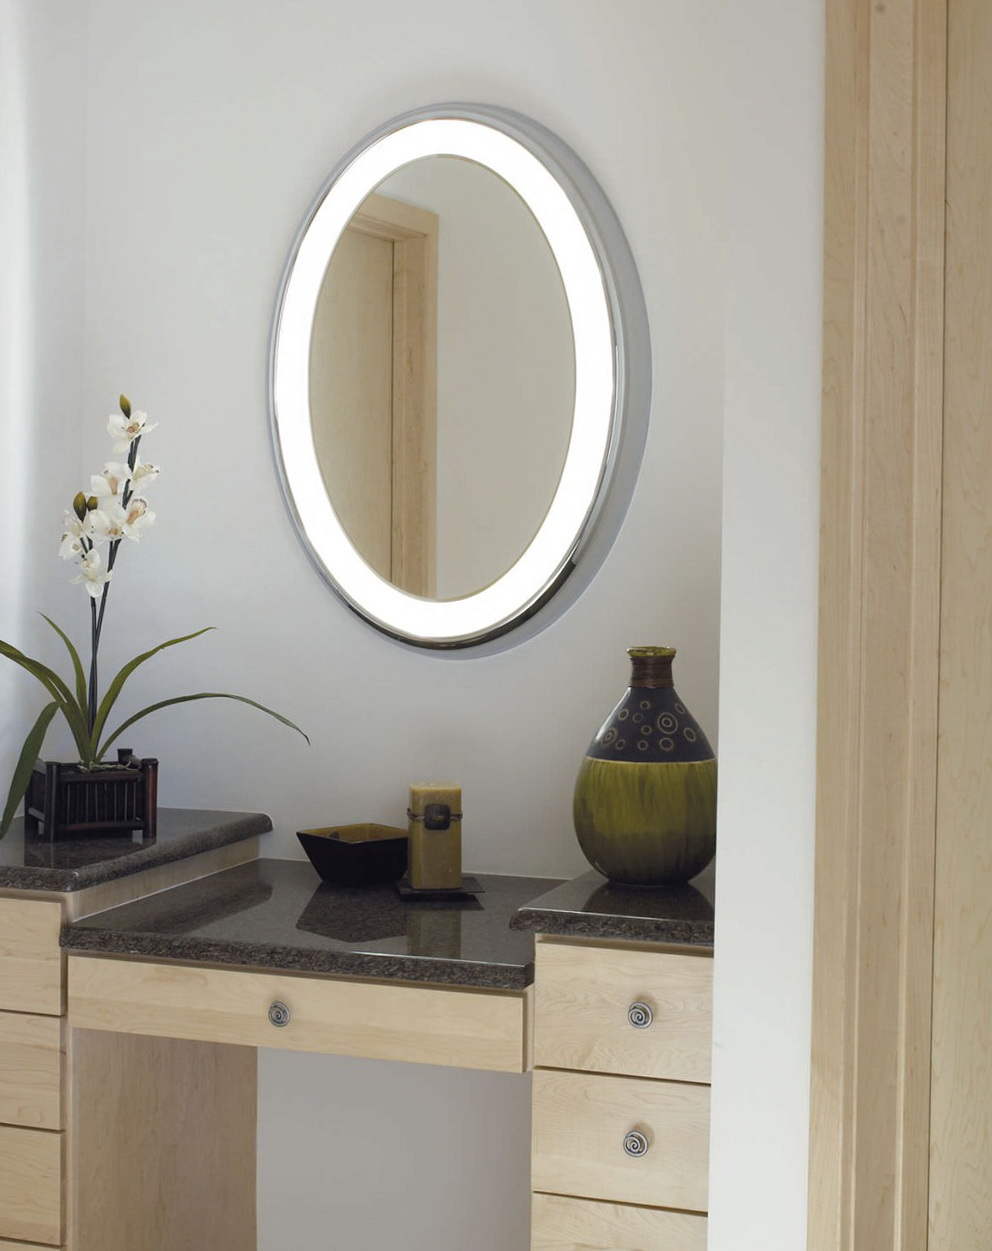 Elegant oval bathroom vanity mirrors oval bathroom vanity mirrors